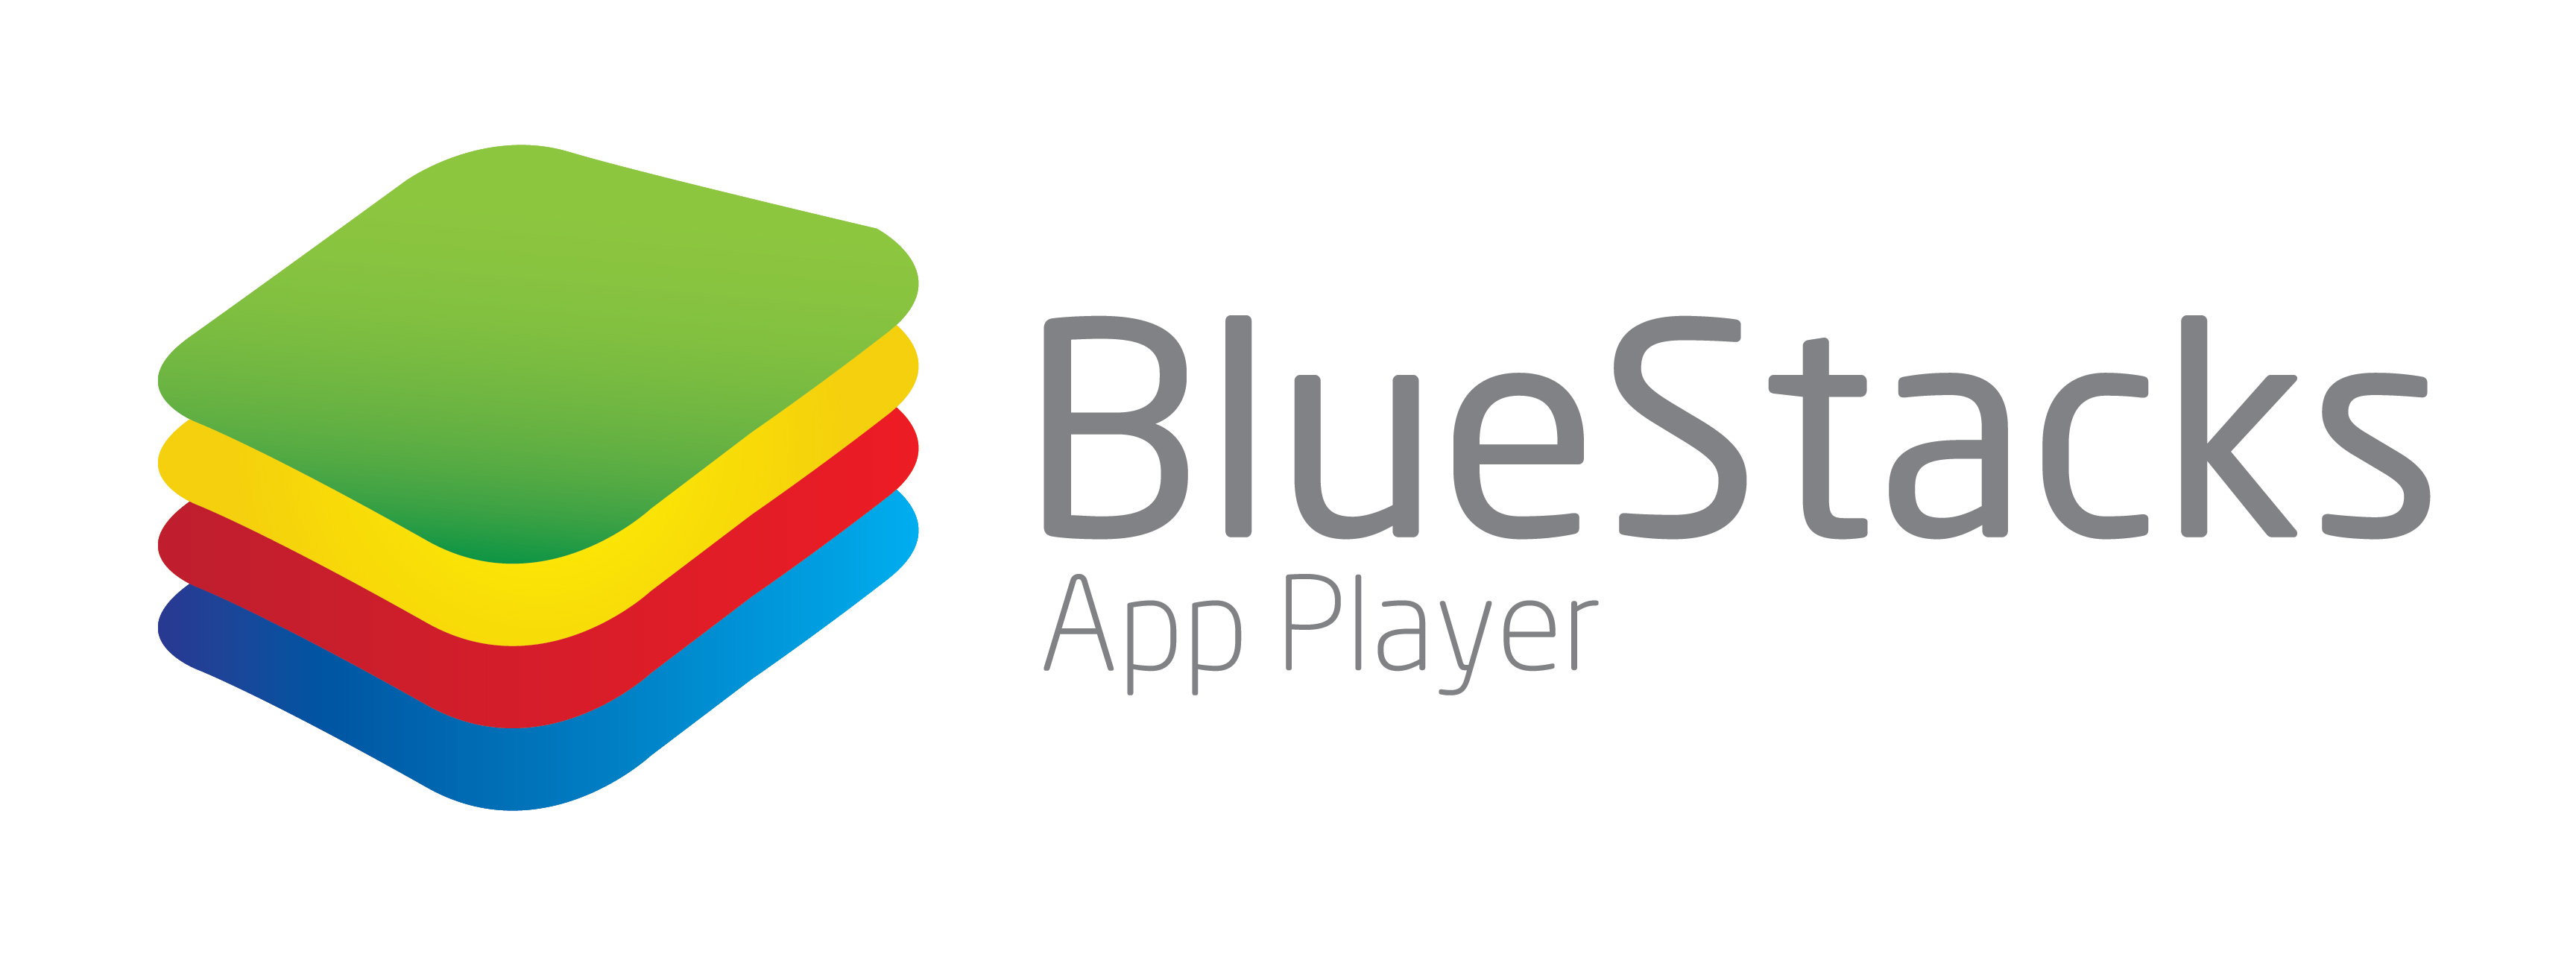 Download-bluestacks-for-pc-free | inthow.